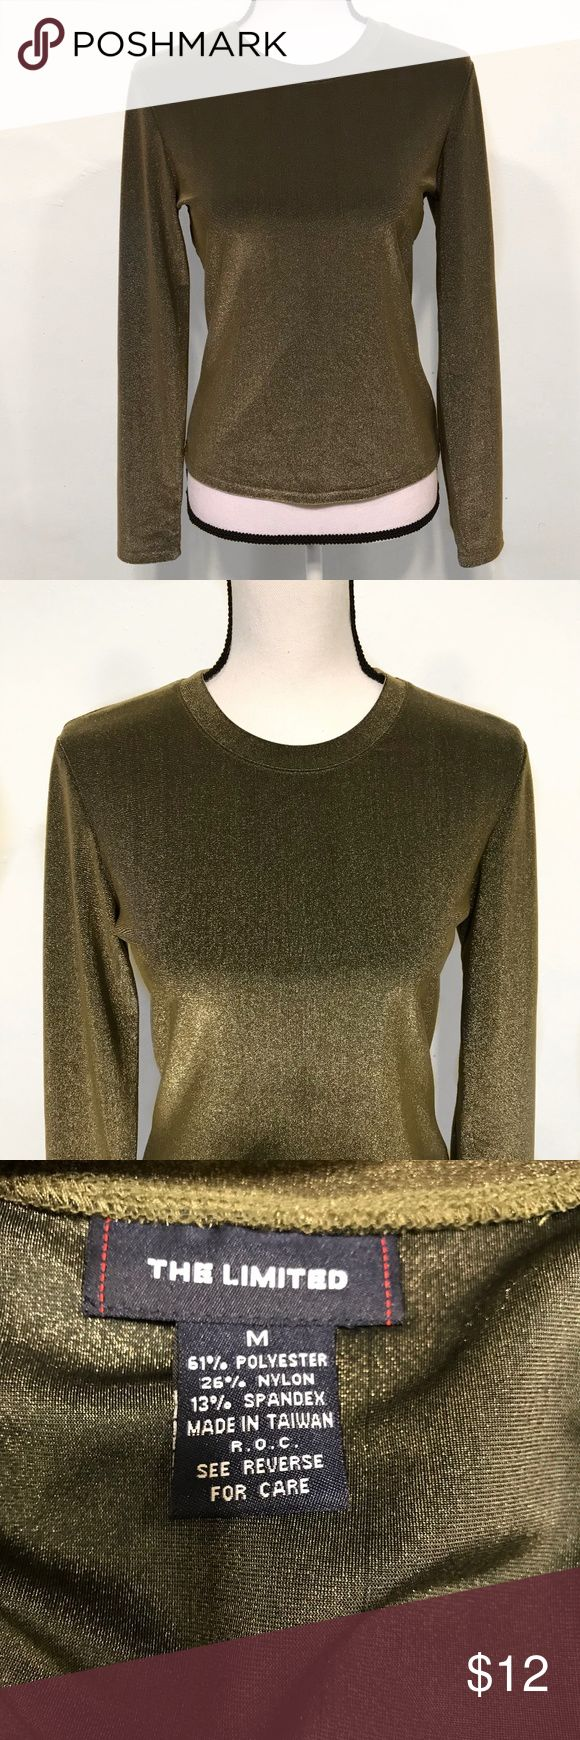 The Limited Metallic Long Sleeve Top The Limited Metallic Long Sleeve Top  Gold/Olive Color   Like NEW The Limited Tops